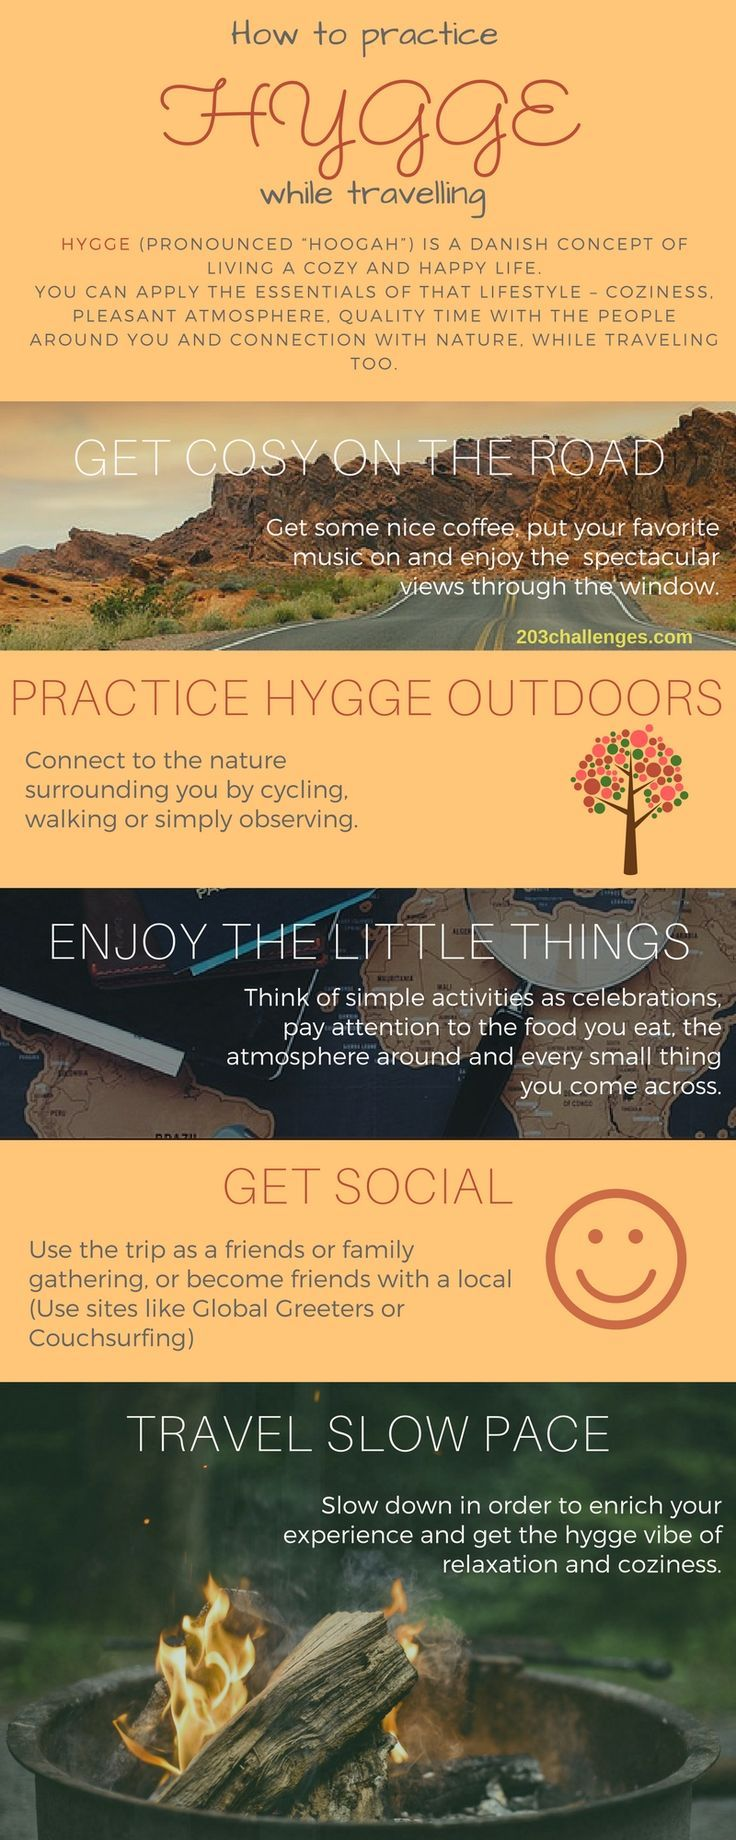 The challenge: master the art of hygge living while traveling